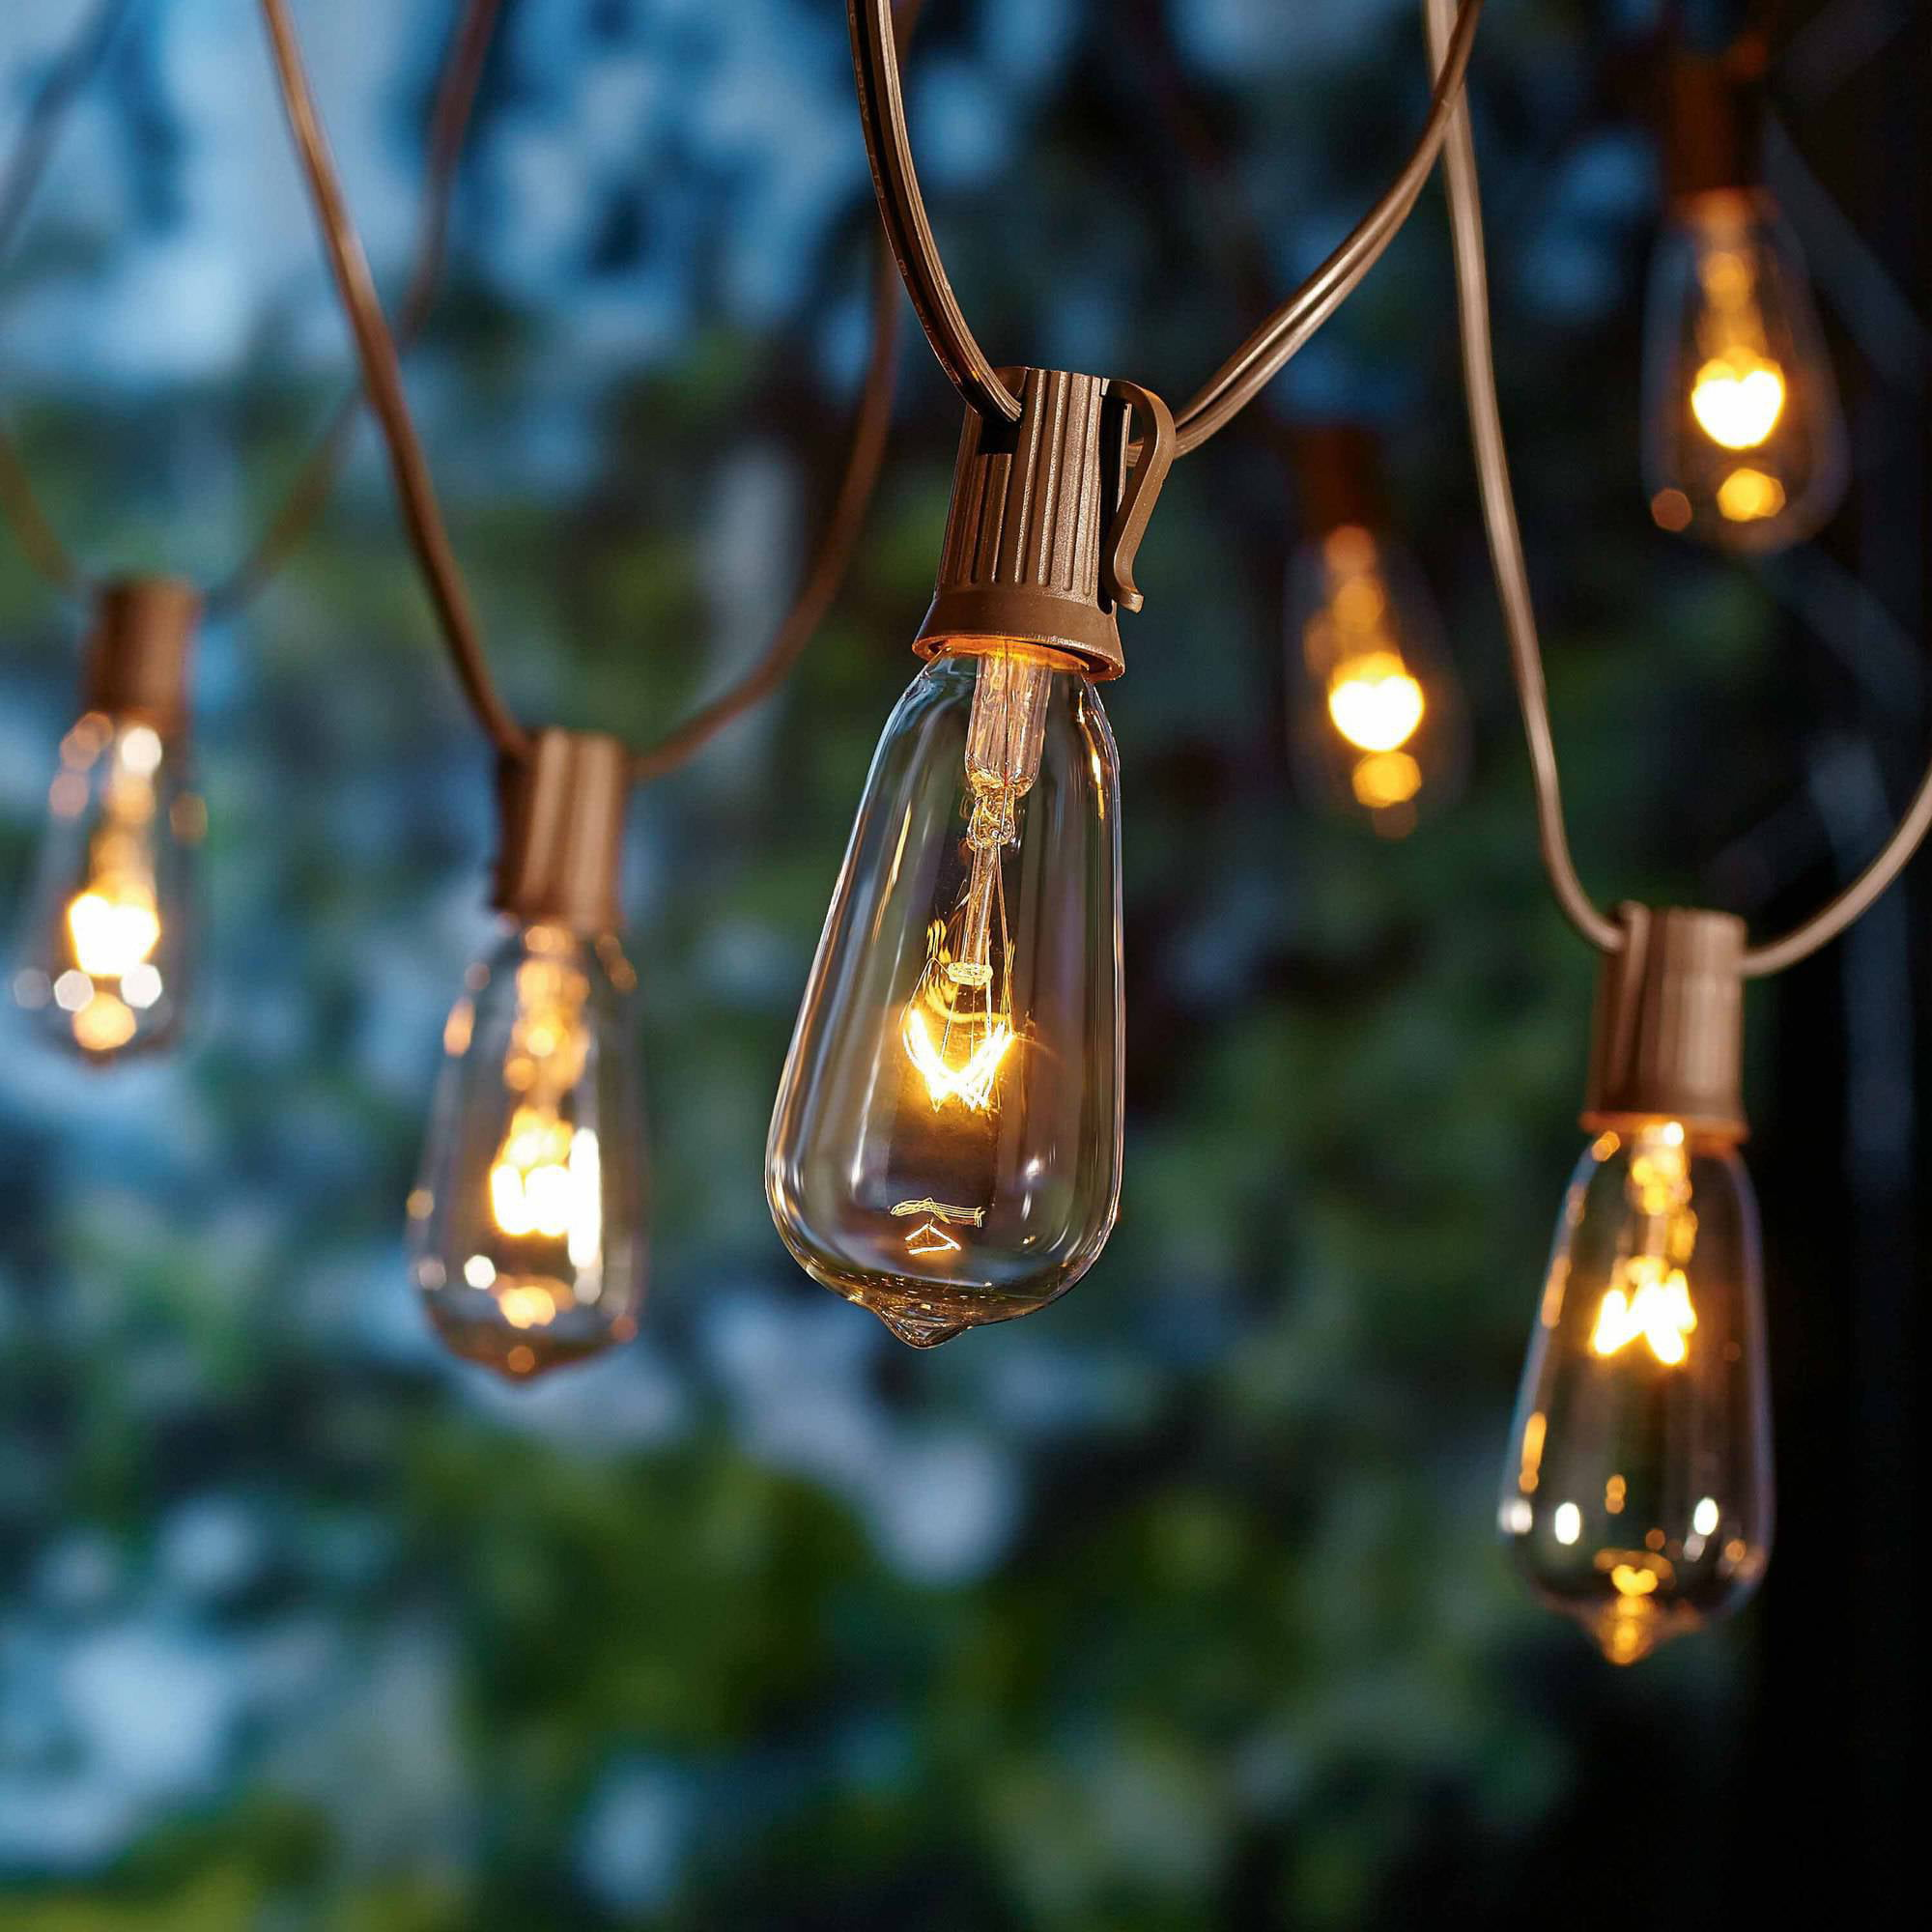 Better Homes and Gardens Outdoor Glass Edison String Lights 10 Count - Walmart.com & Better Homes and Gardens Outdoor Glass Edison String Lights 10 ...